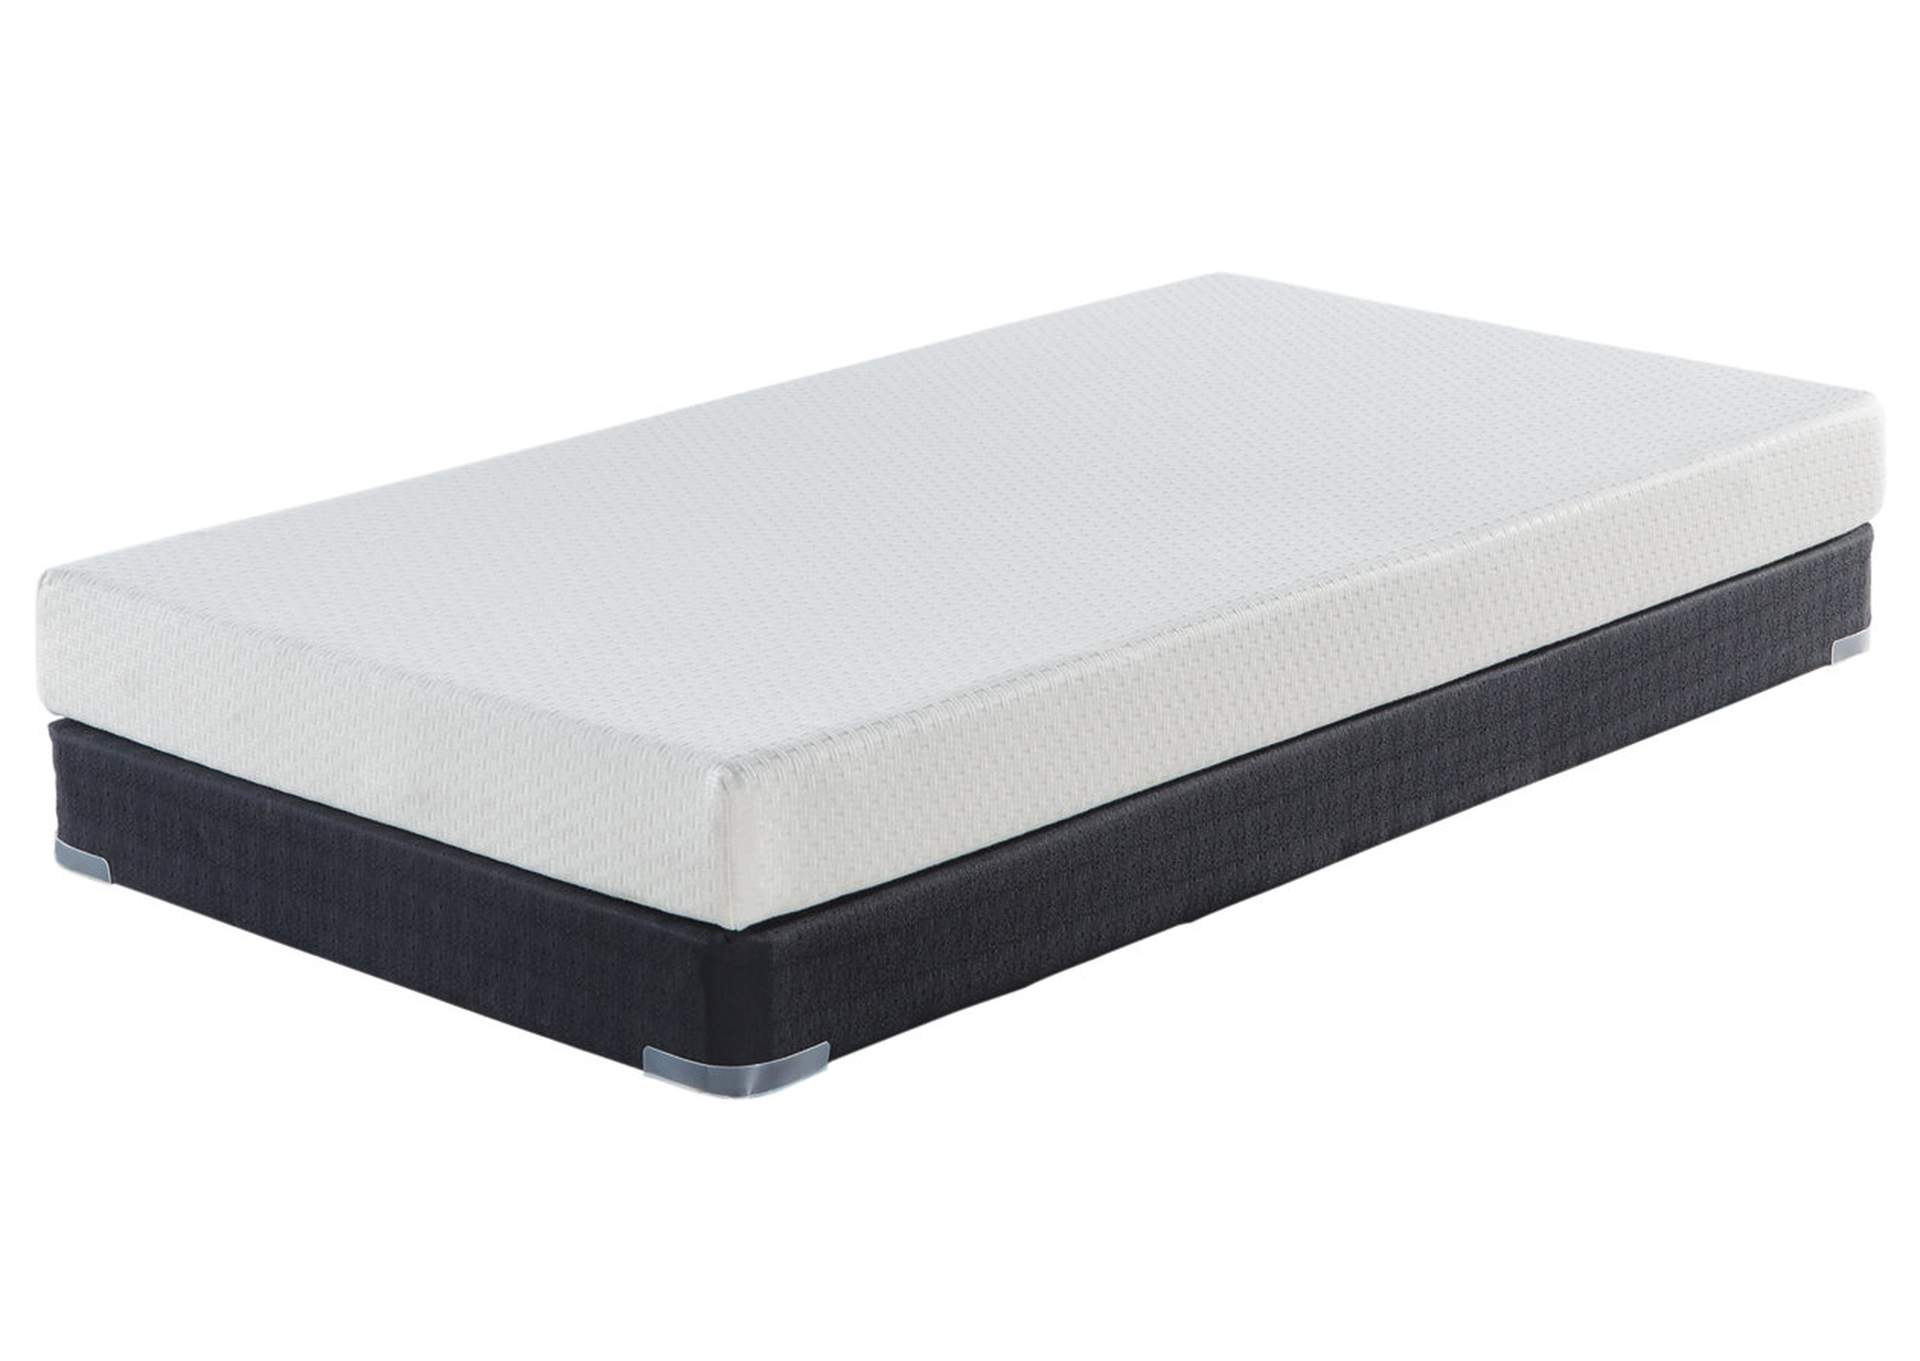 6 Inch Chime Express Twin Memory Foam Mattress,Sierra Sleep by Ashley